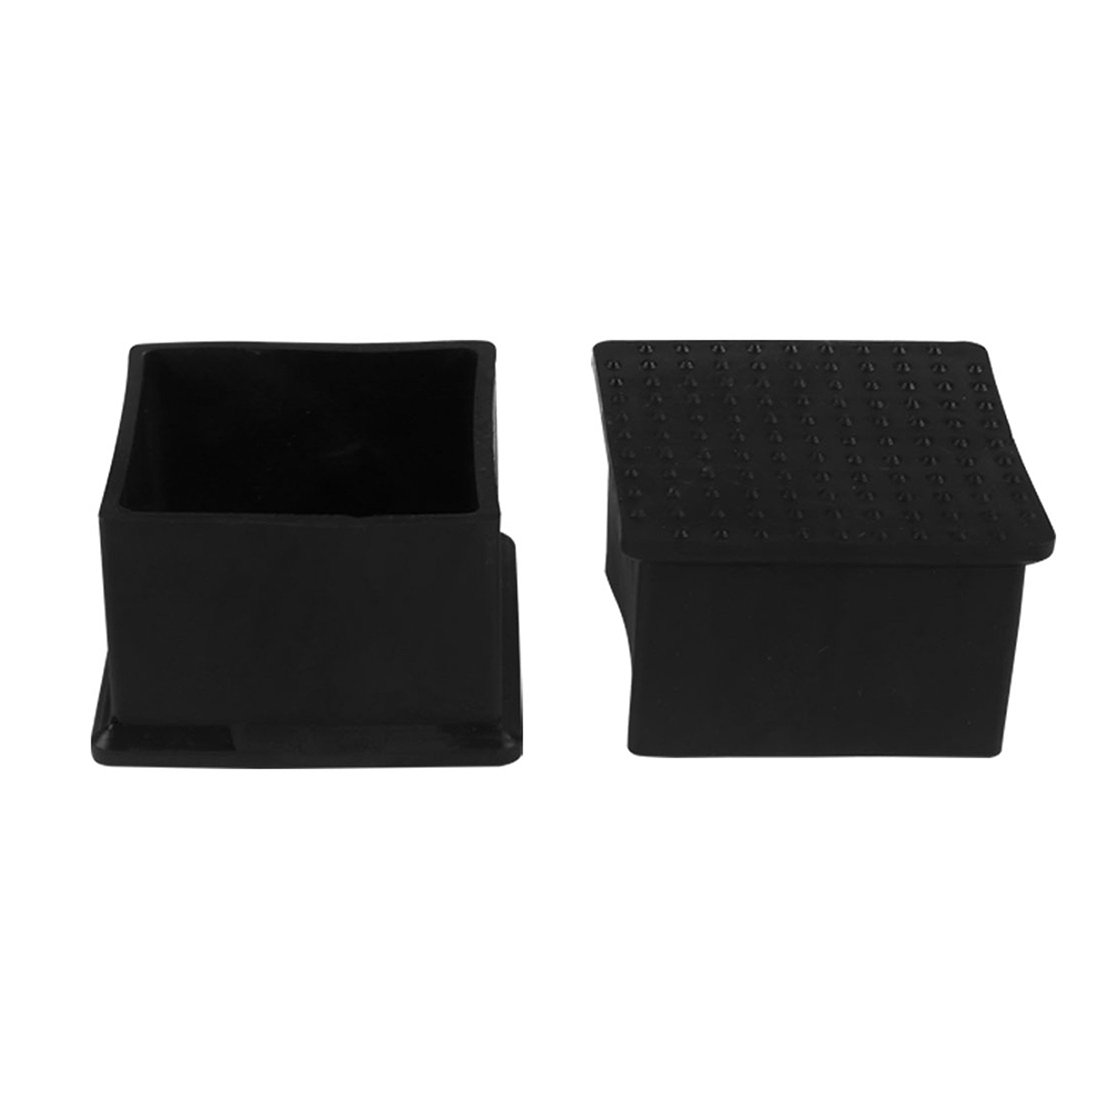 """Desk Table Leg Caps End Tip Home Furniture Protector 25pcs 1.77""""x1.77"""" (45x45mm) - image 7 of 7"""